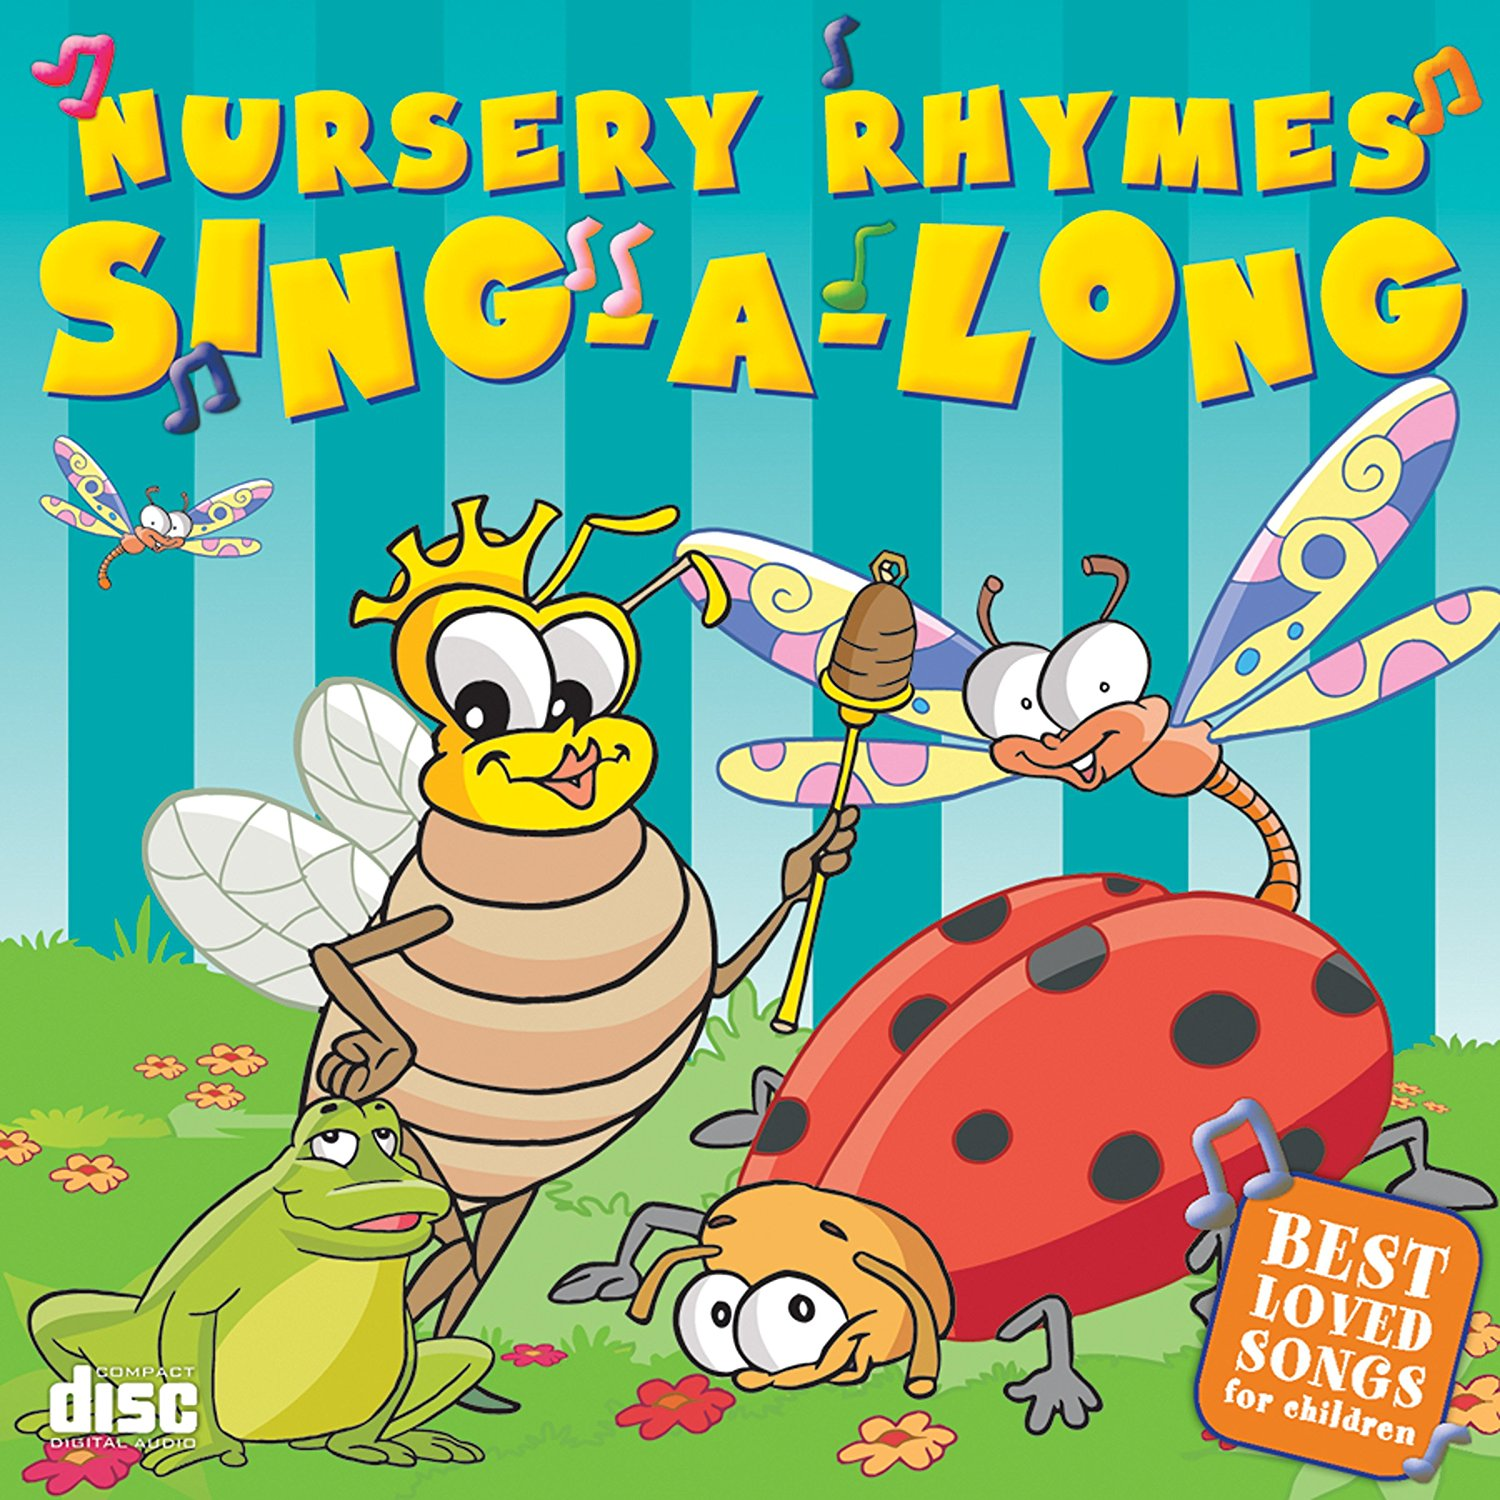 34 Nursery Rhymes Sing A Longs Best Loved Songs For Children Cd